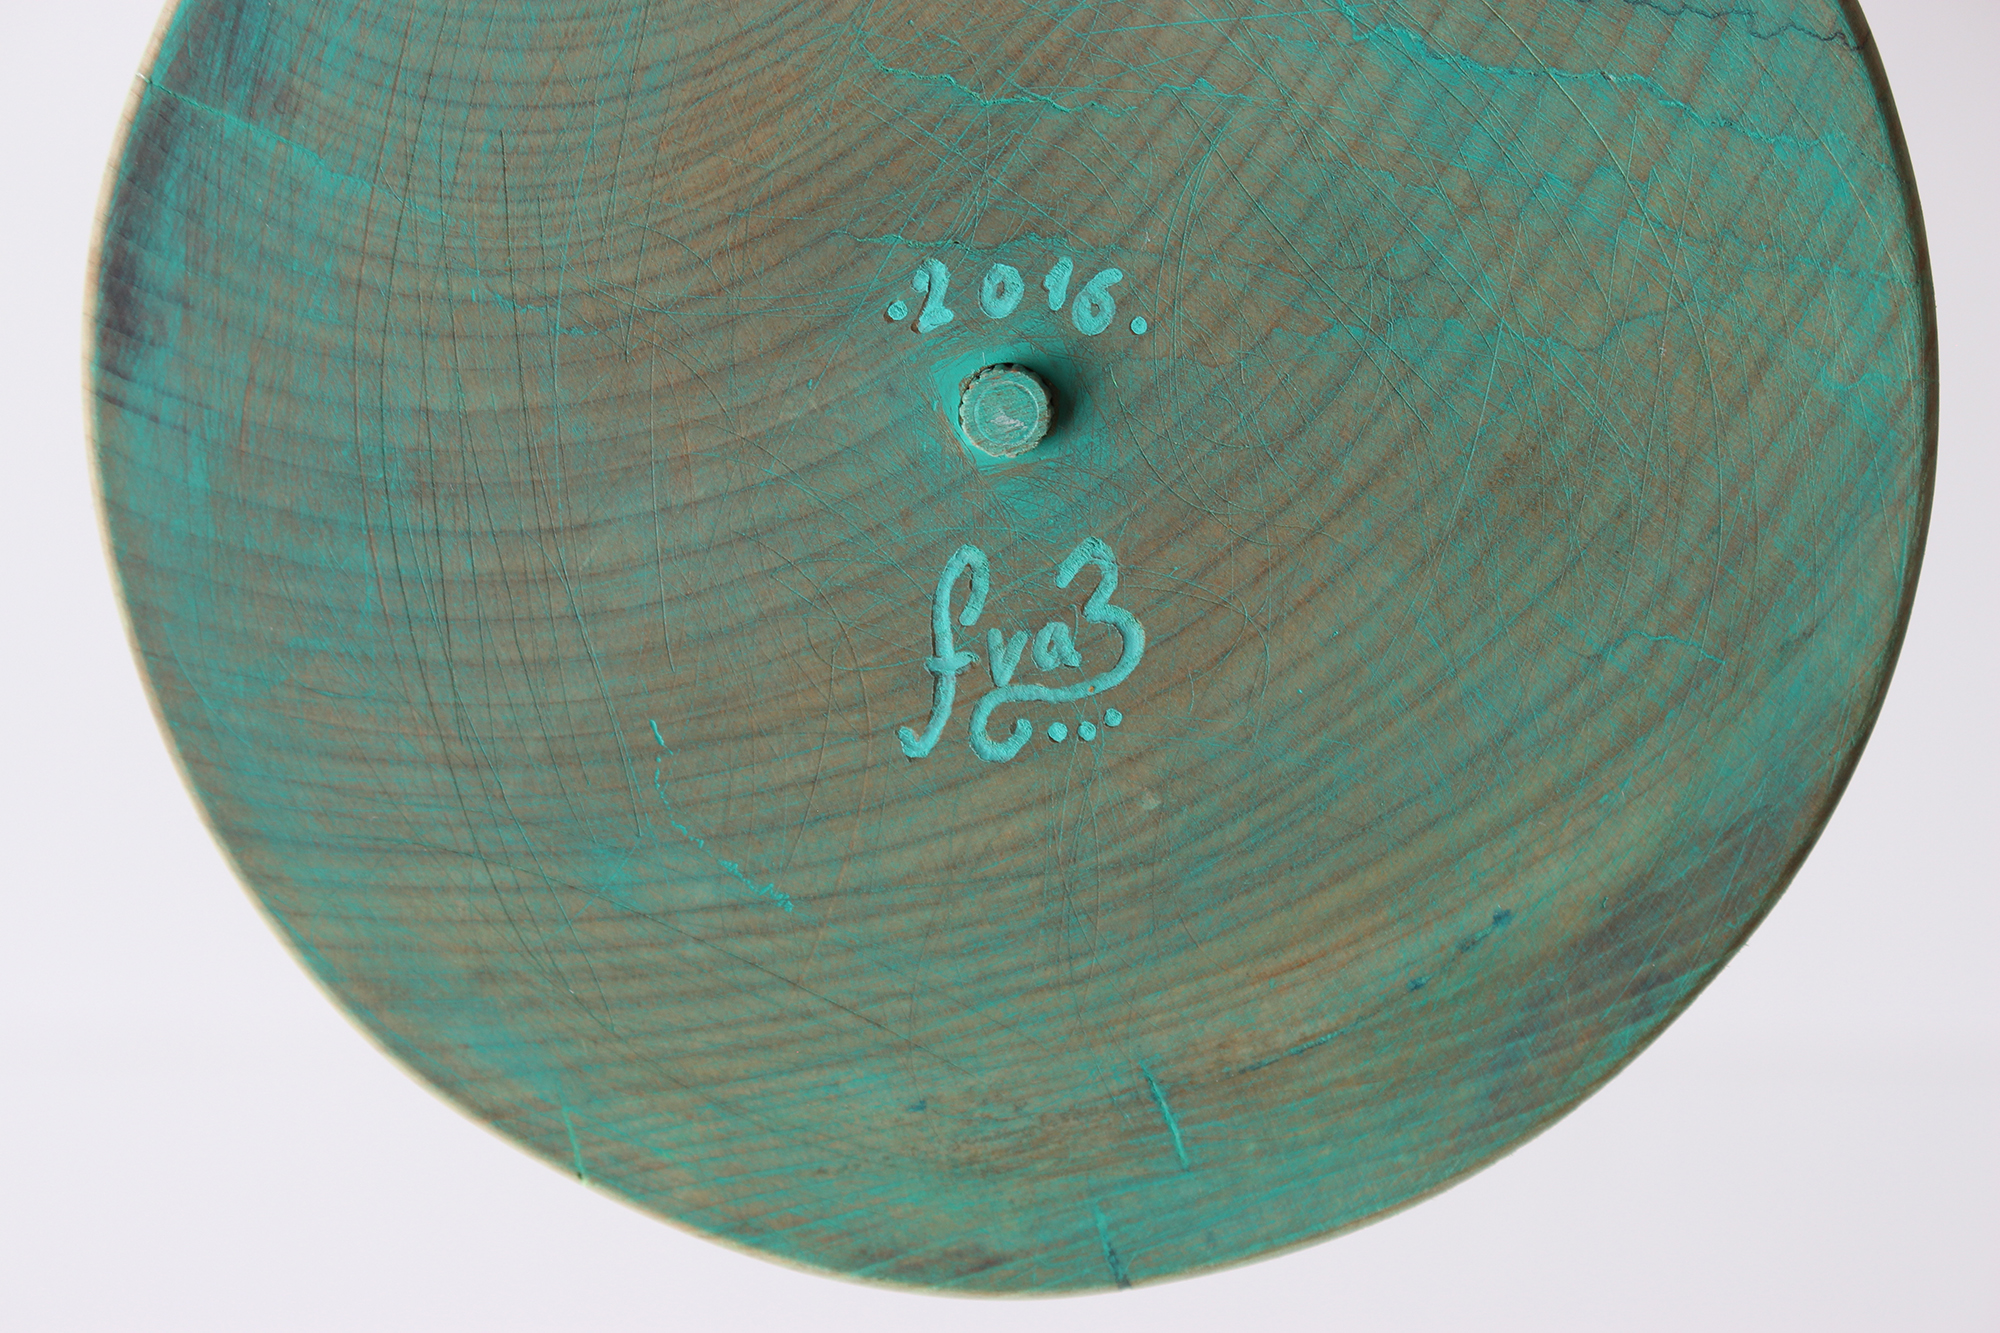 Shaking Drum Plate - detail